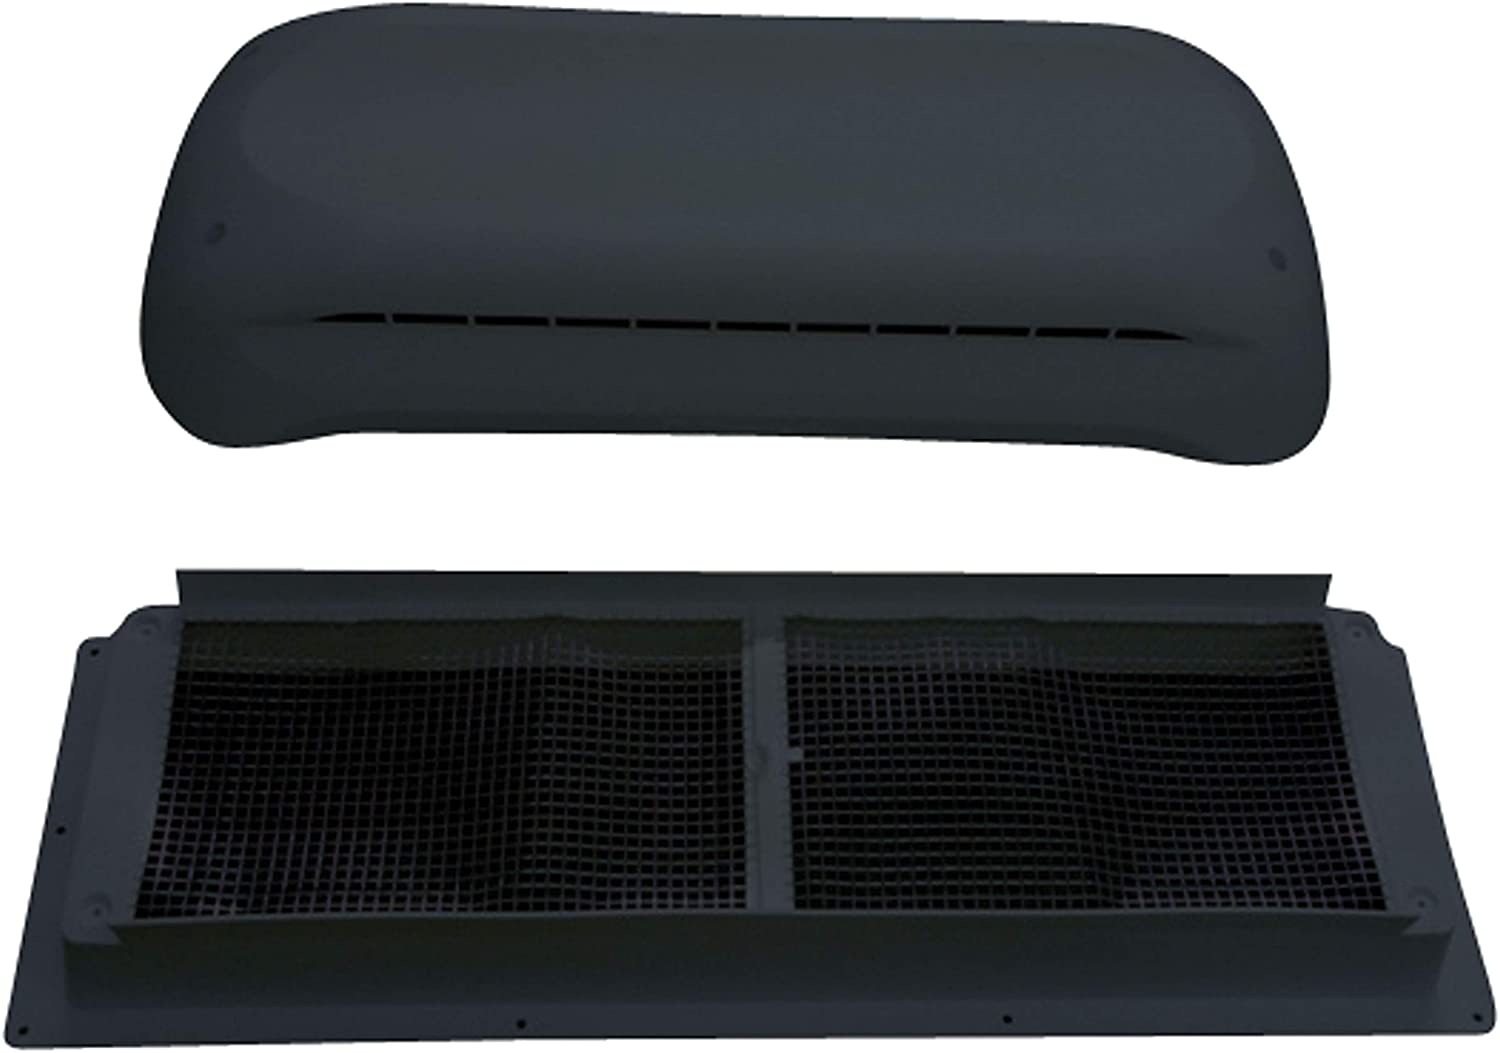 Dometic 3311236.024 Refrigerator Complete Vent Kit - Black